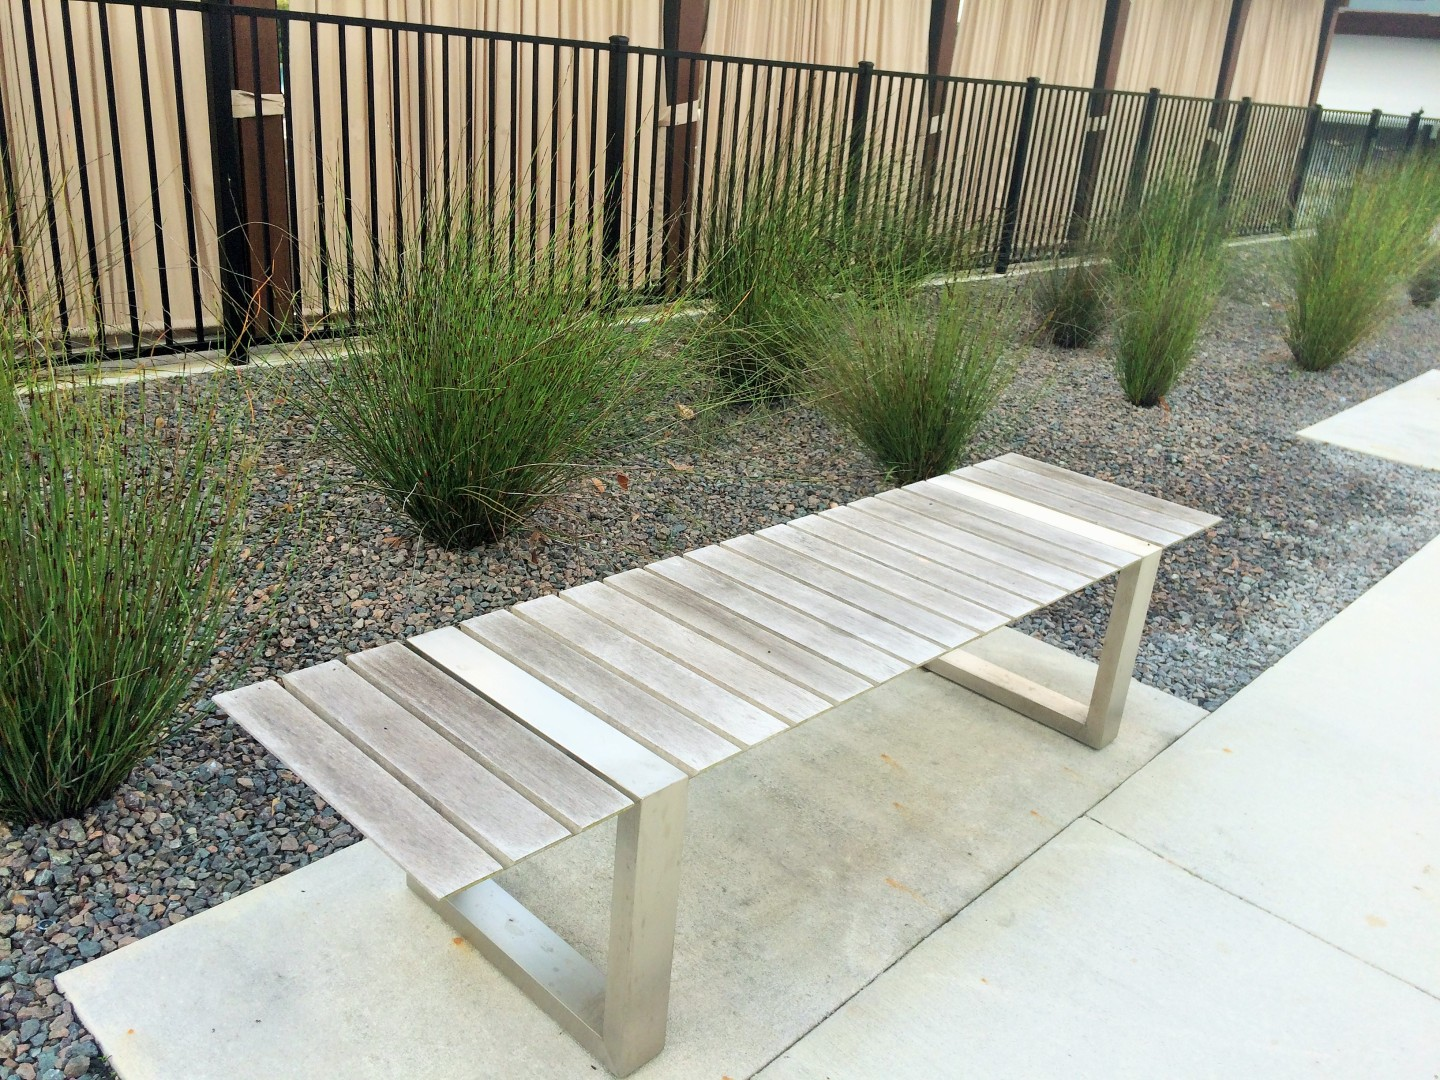 Even simple benches have a minimalist edge.